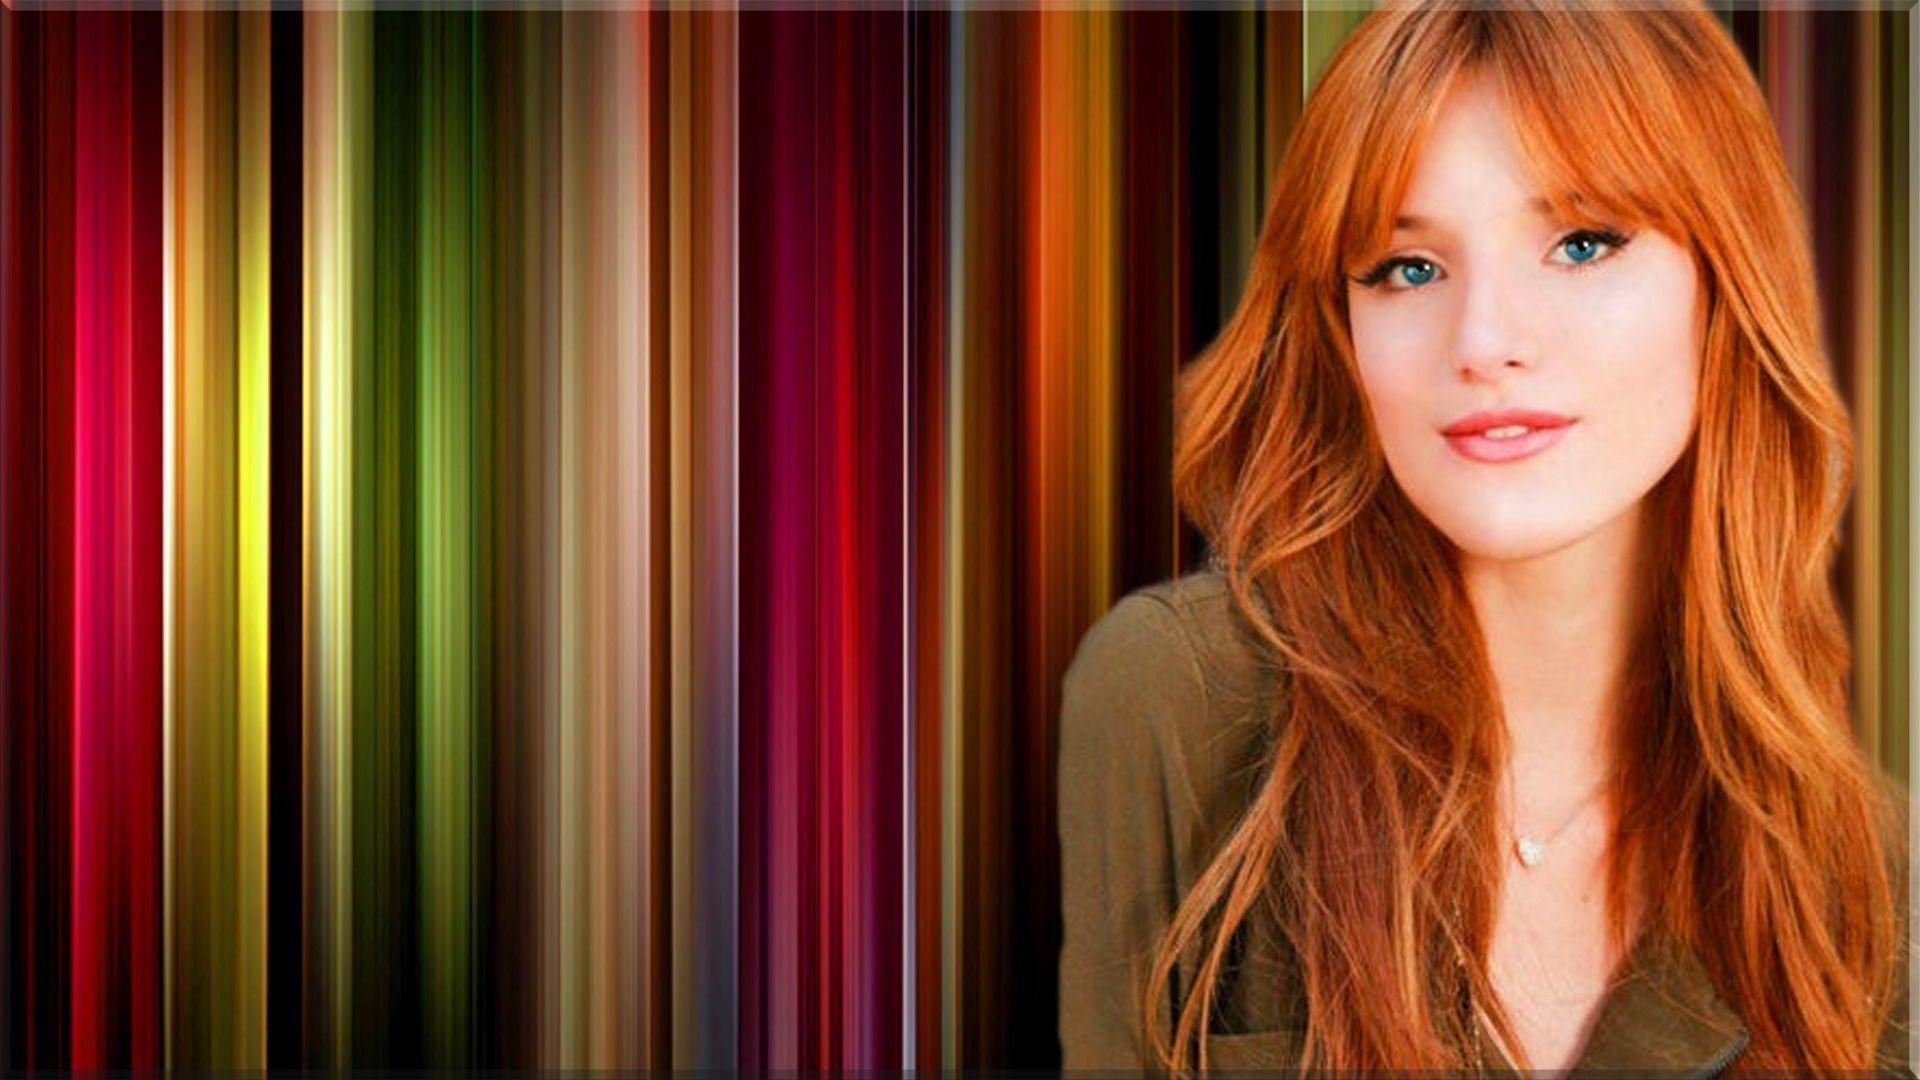 Res: 1920x1080, Pretty Redhead Computer Wallpapers, Desktop Backgrounds  .